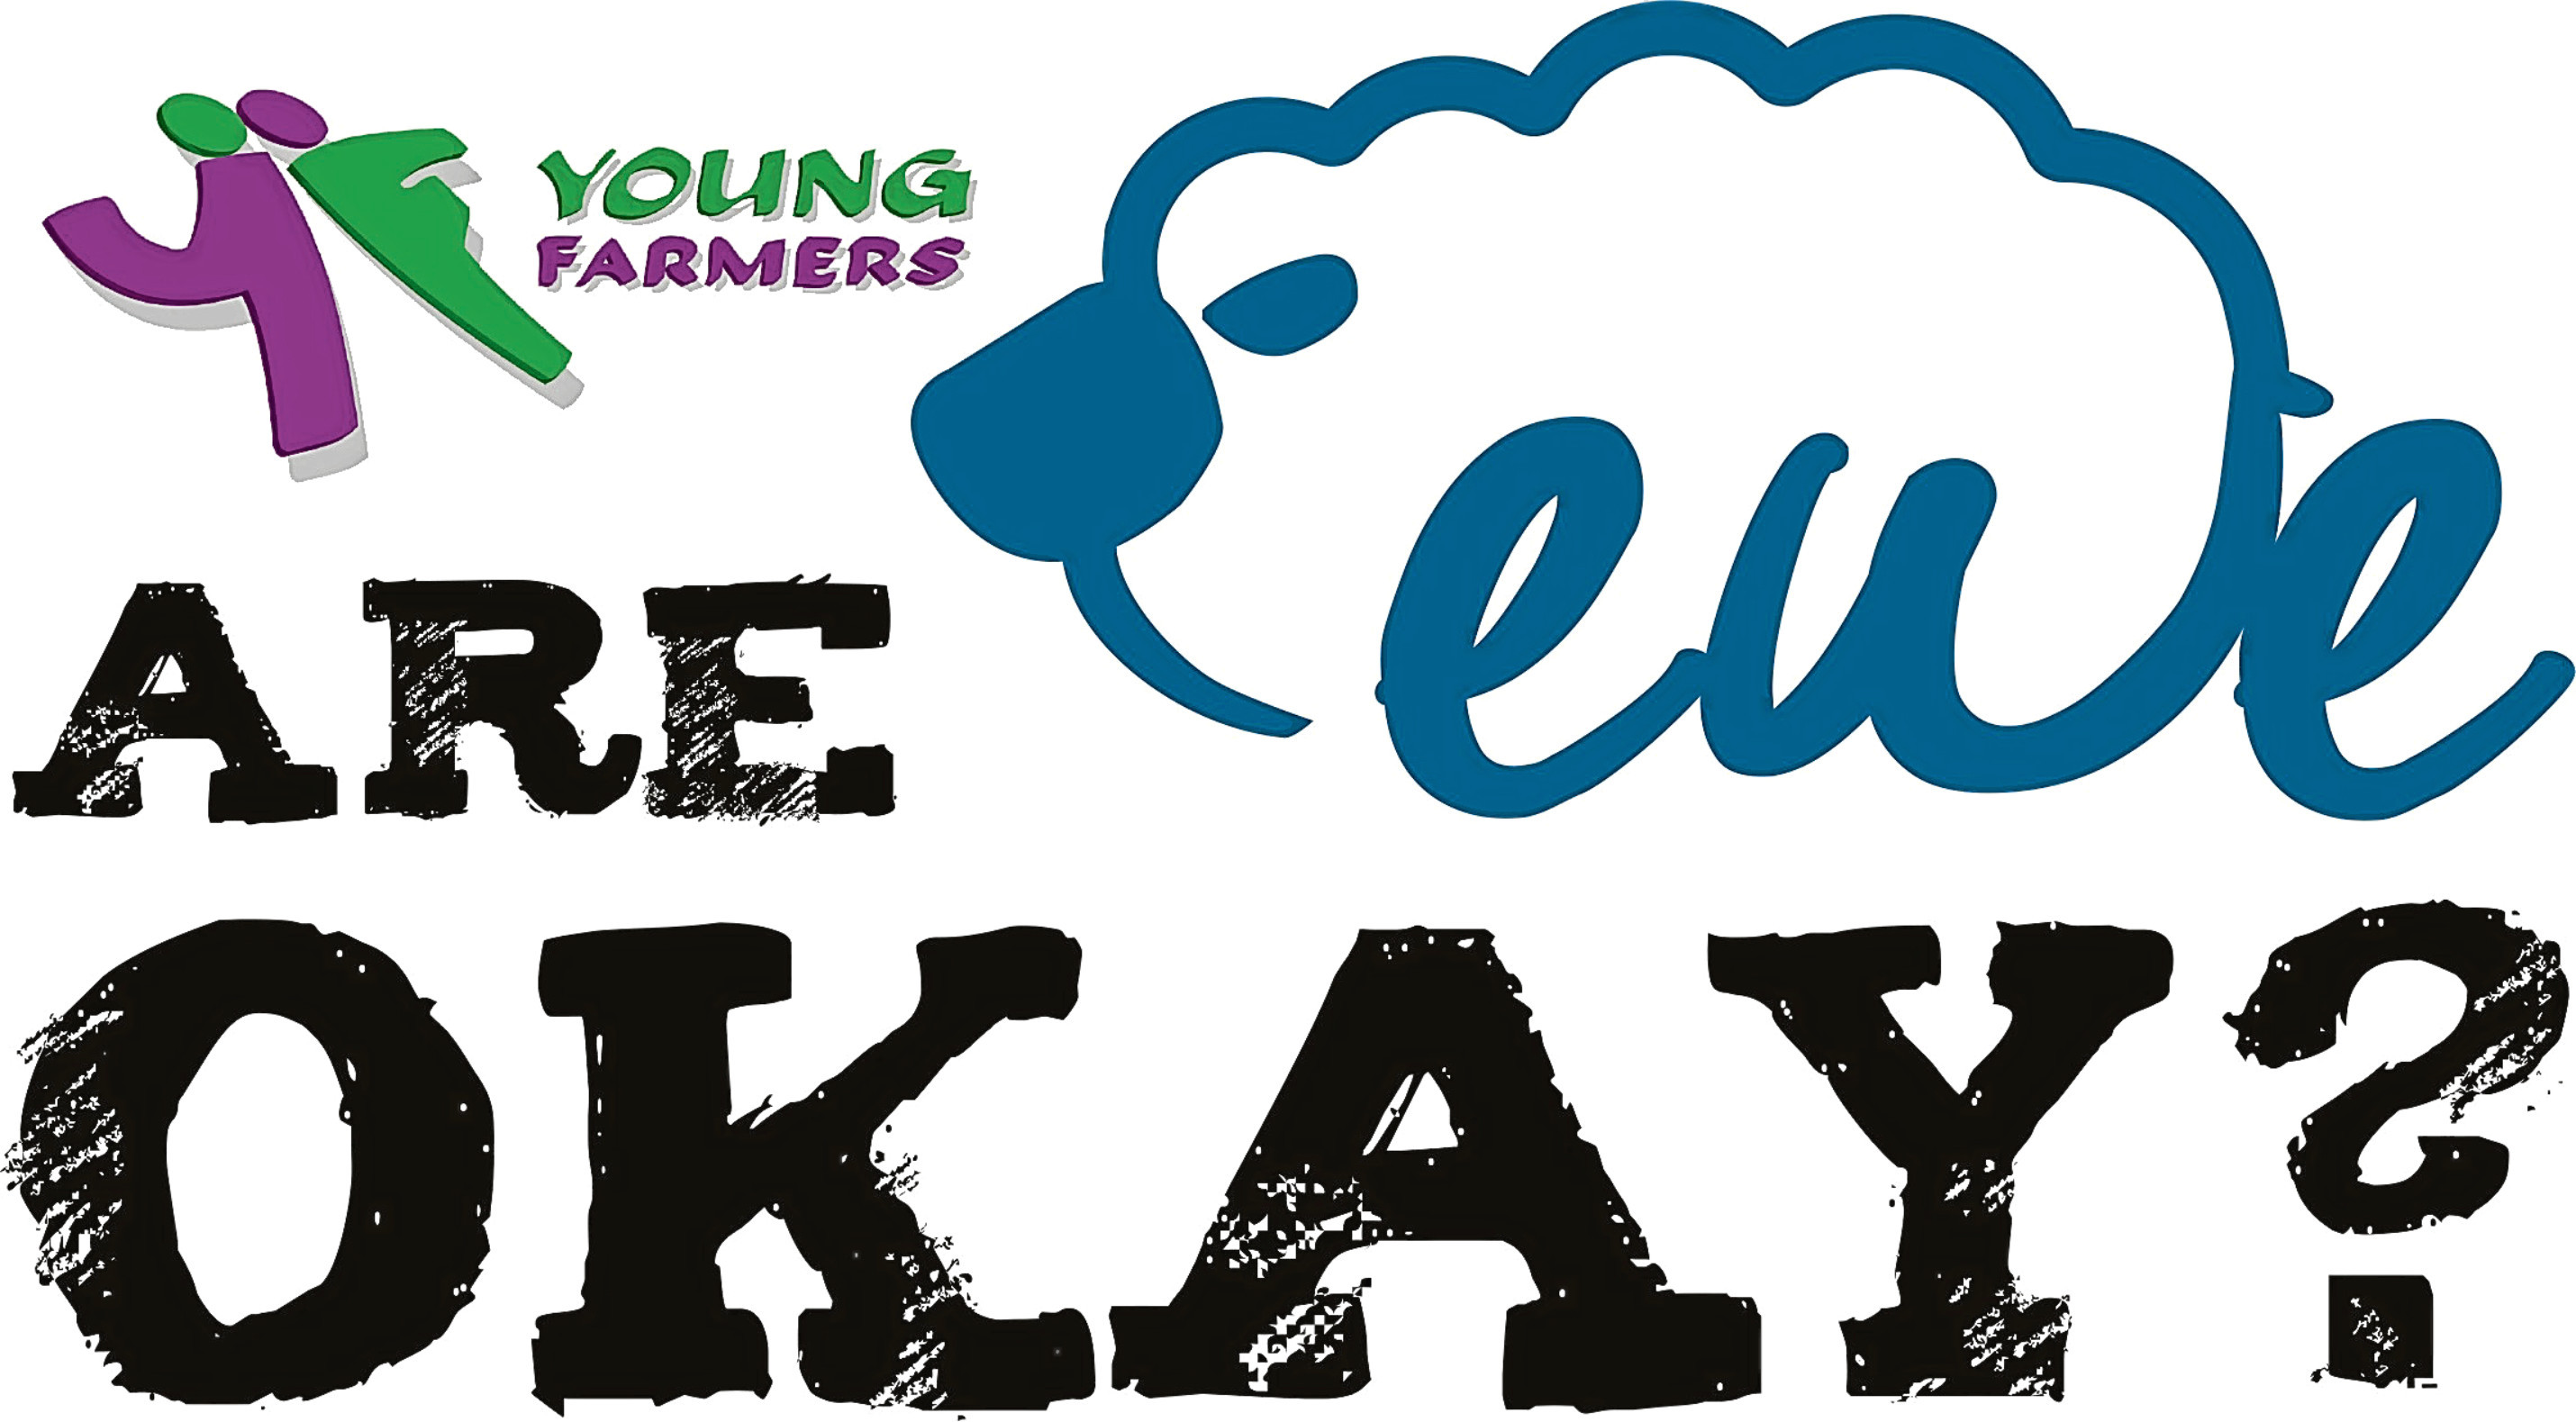 The SAYFC campaign logo